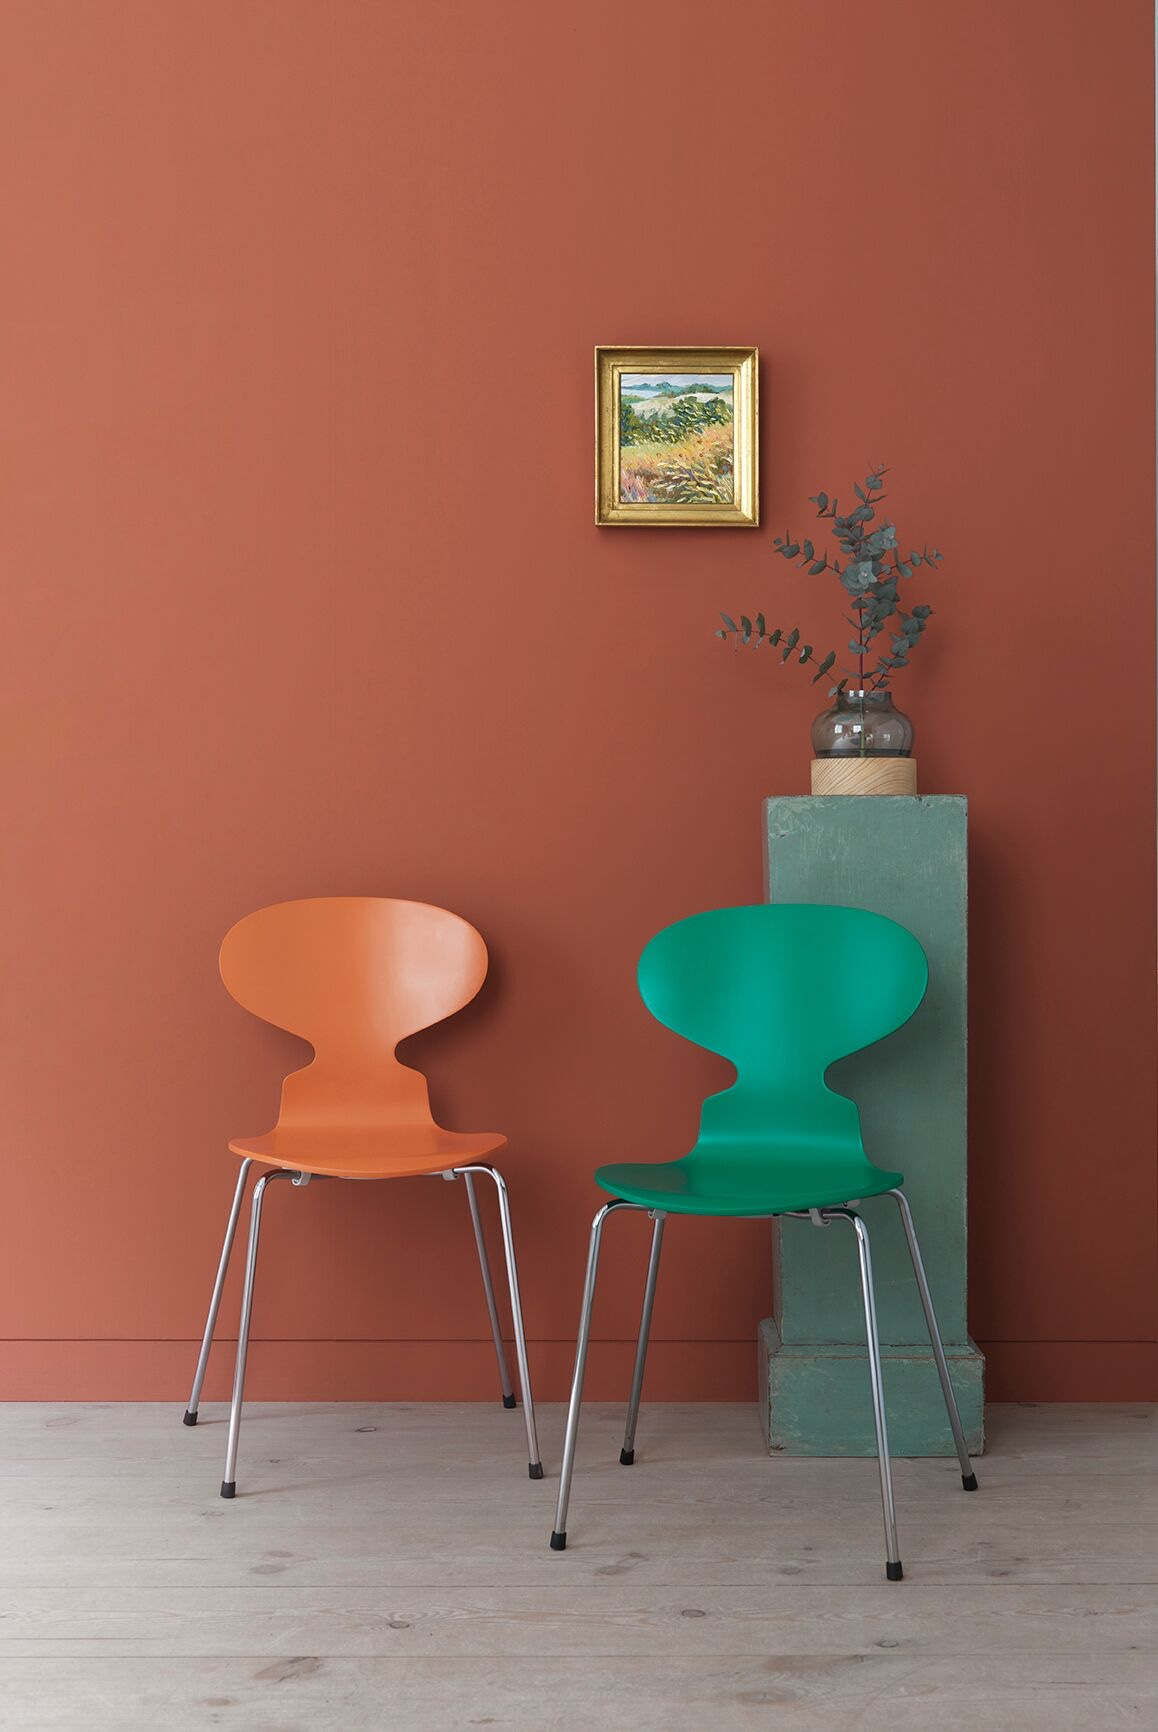 Ant™ in Chevalier Orange and Hüzün Green. Colours by Danish artist Tal R.